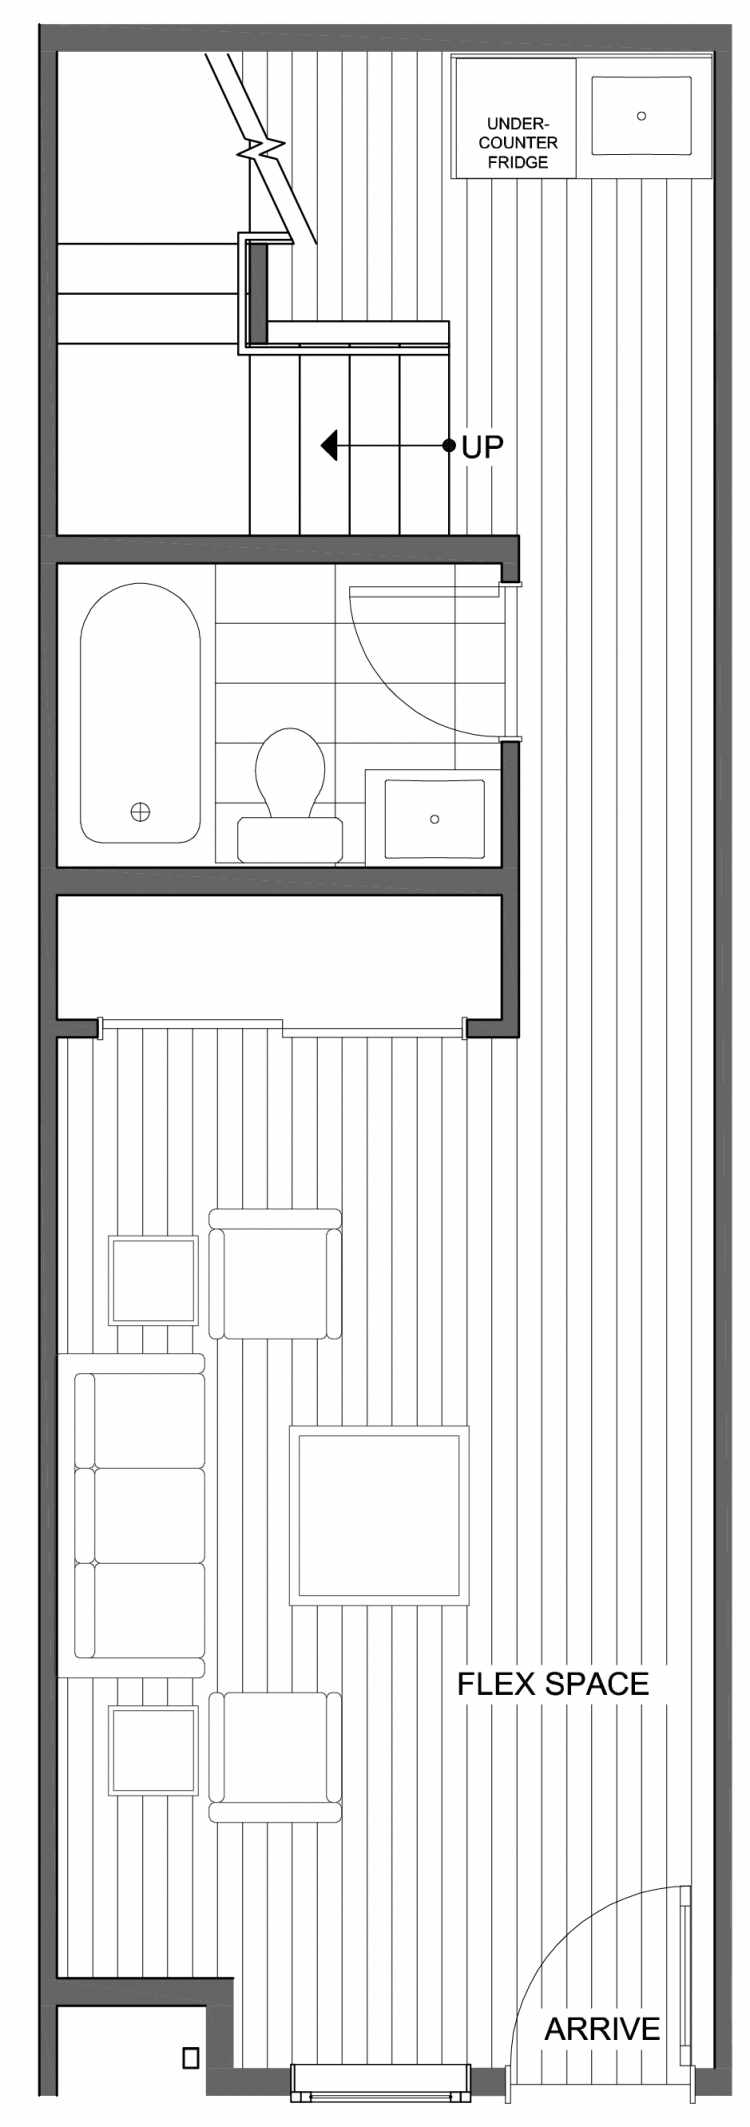 First Floor Plan of 806D N 46th St, One of the Nino 15 East Townhomes by Isola Homes